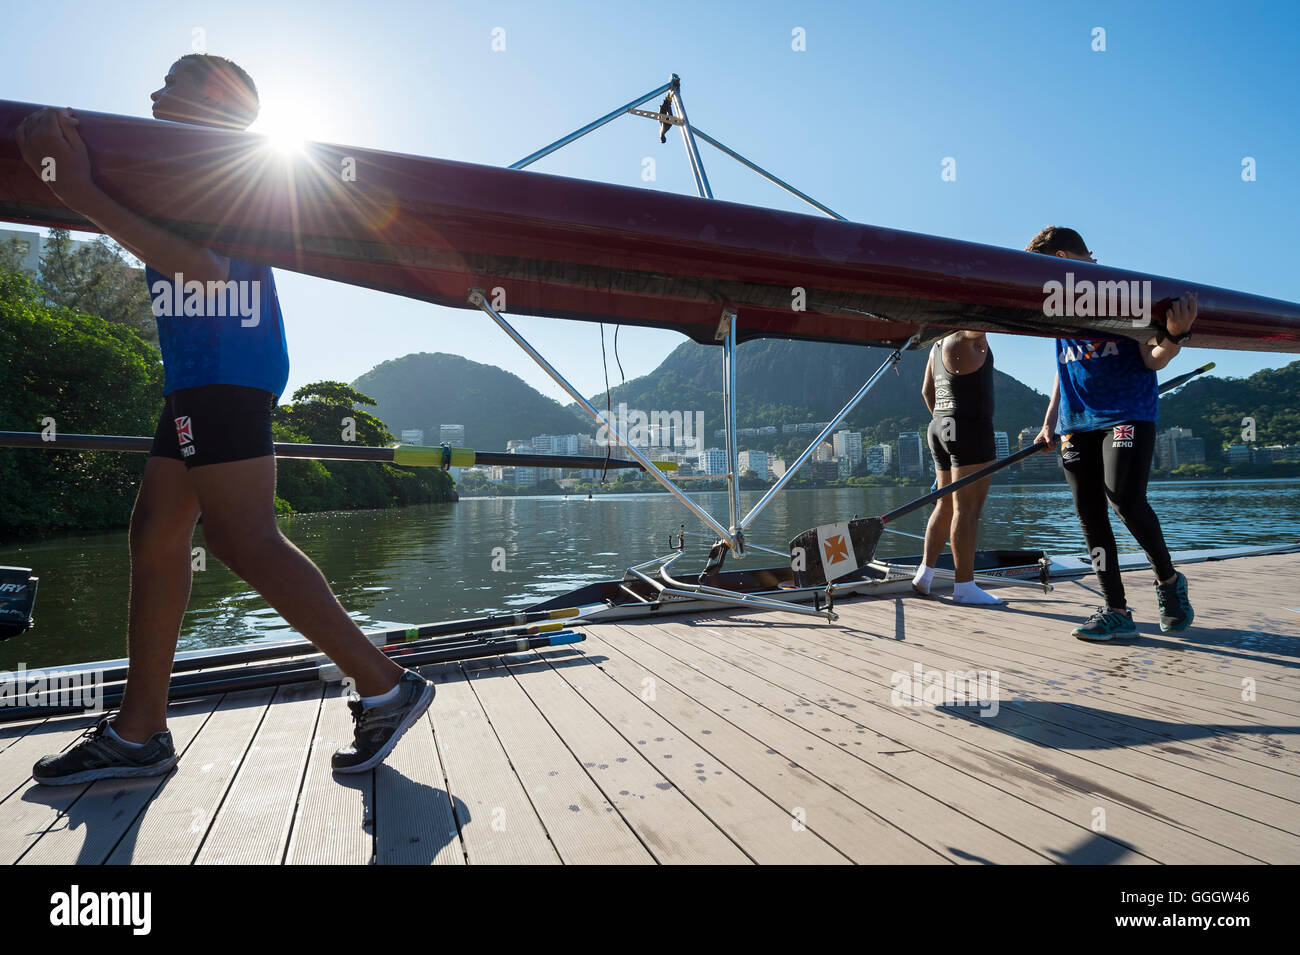 RIO DE JANEIRO - MARCH 22, 2016: After training, a female Brazilian rower carries her boat back to the clubhouse - Stock Image